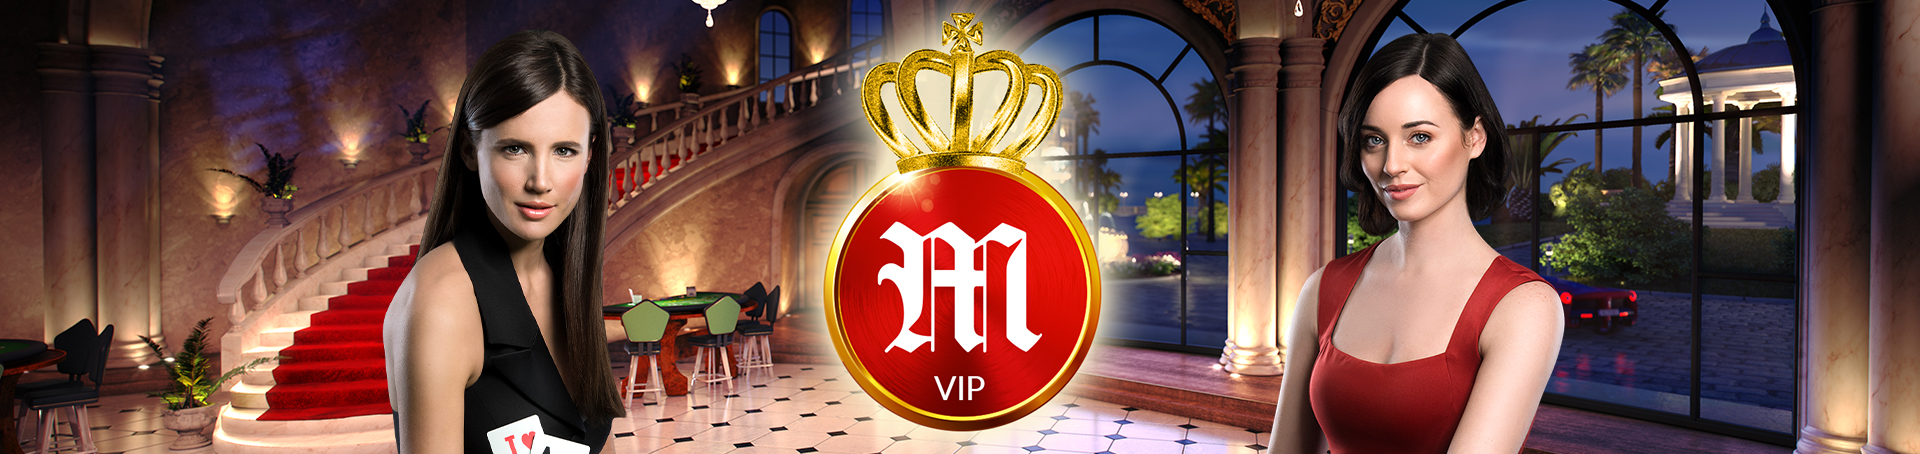 Mansion Casino High Roller VIP